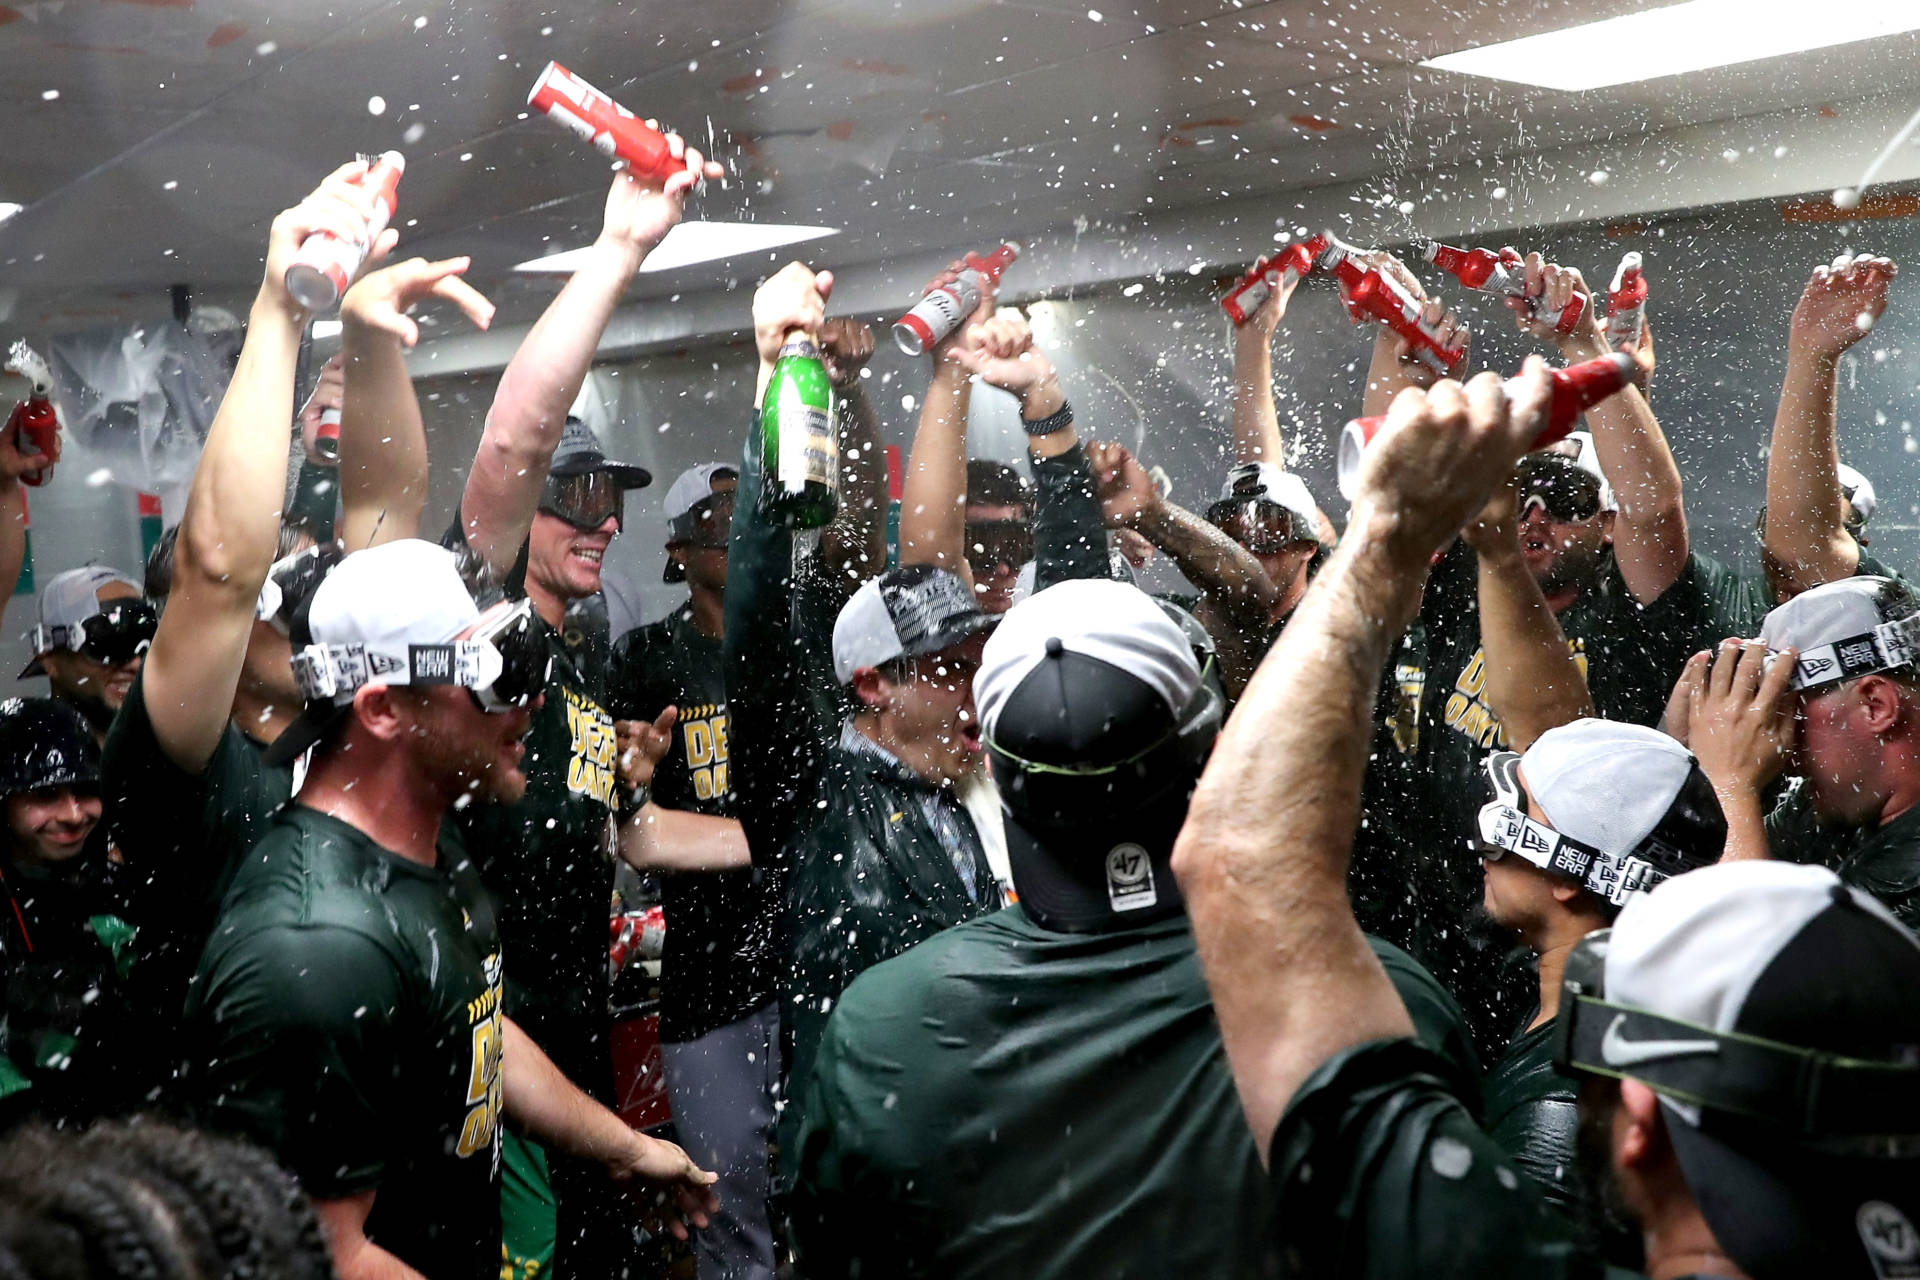 A's players celebrate clinching a spot in the playoffs after beating the Seattle Mariners on Sept. 24, 2018.  Abbie Parr/Getty Images